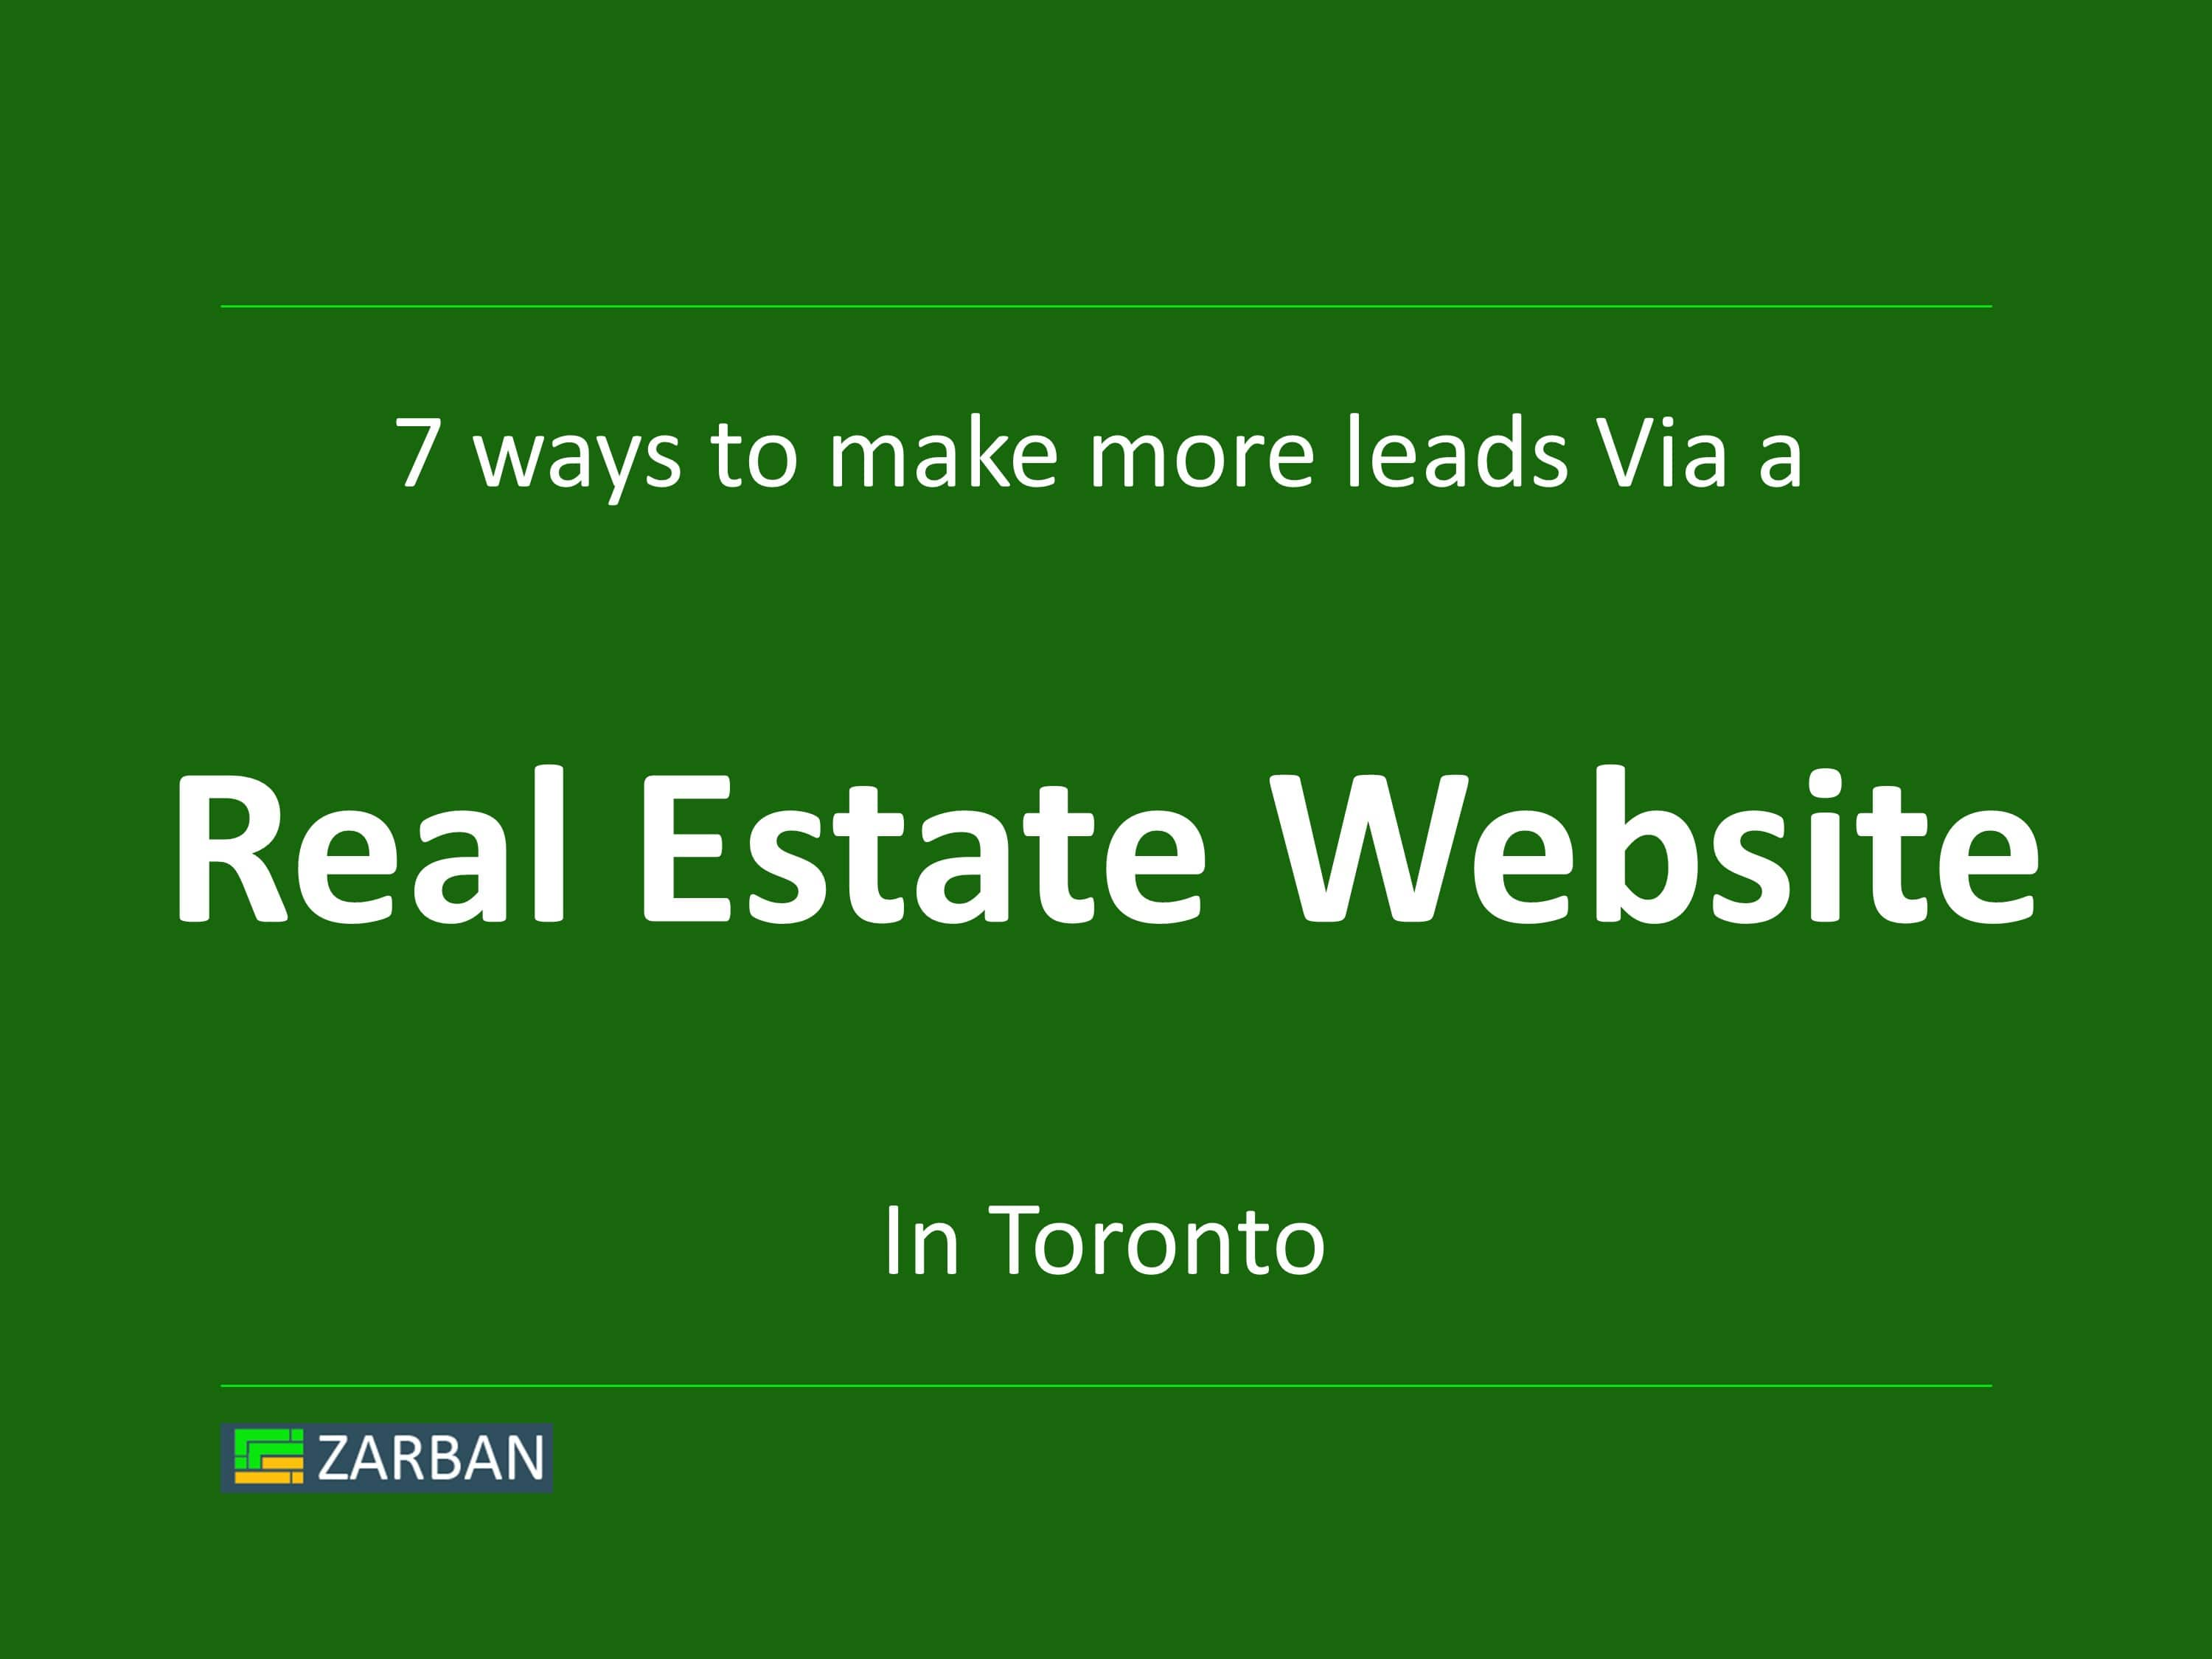 Realtor Website 7 ways to make more leads in Toronto